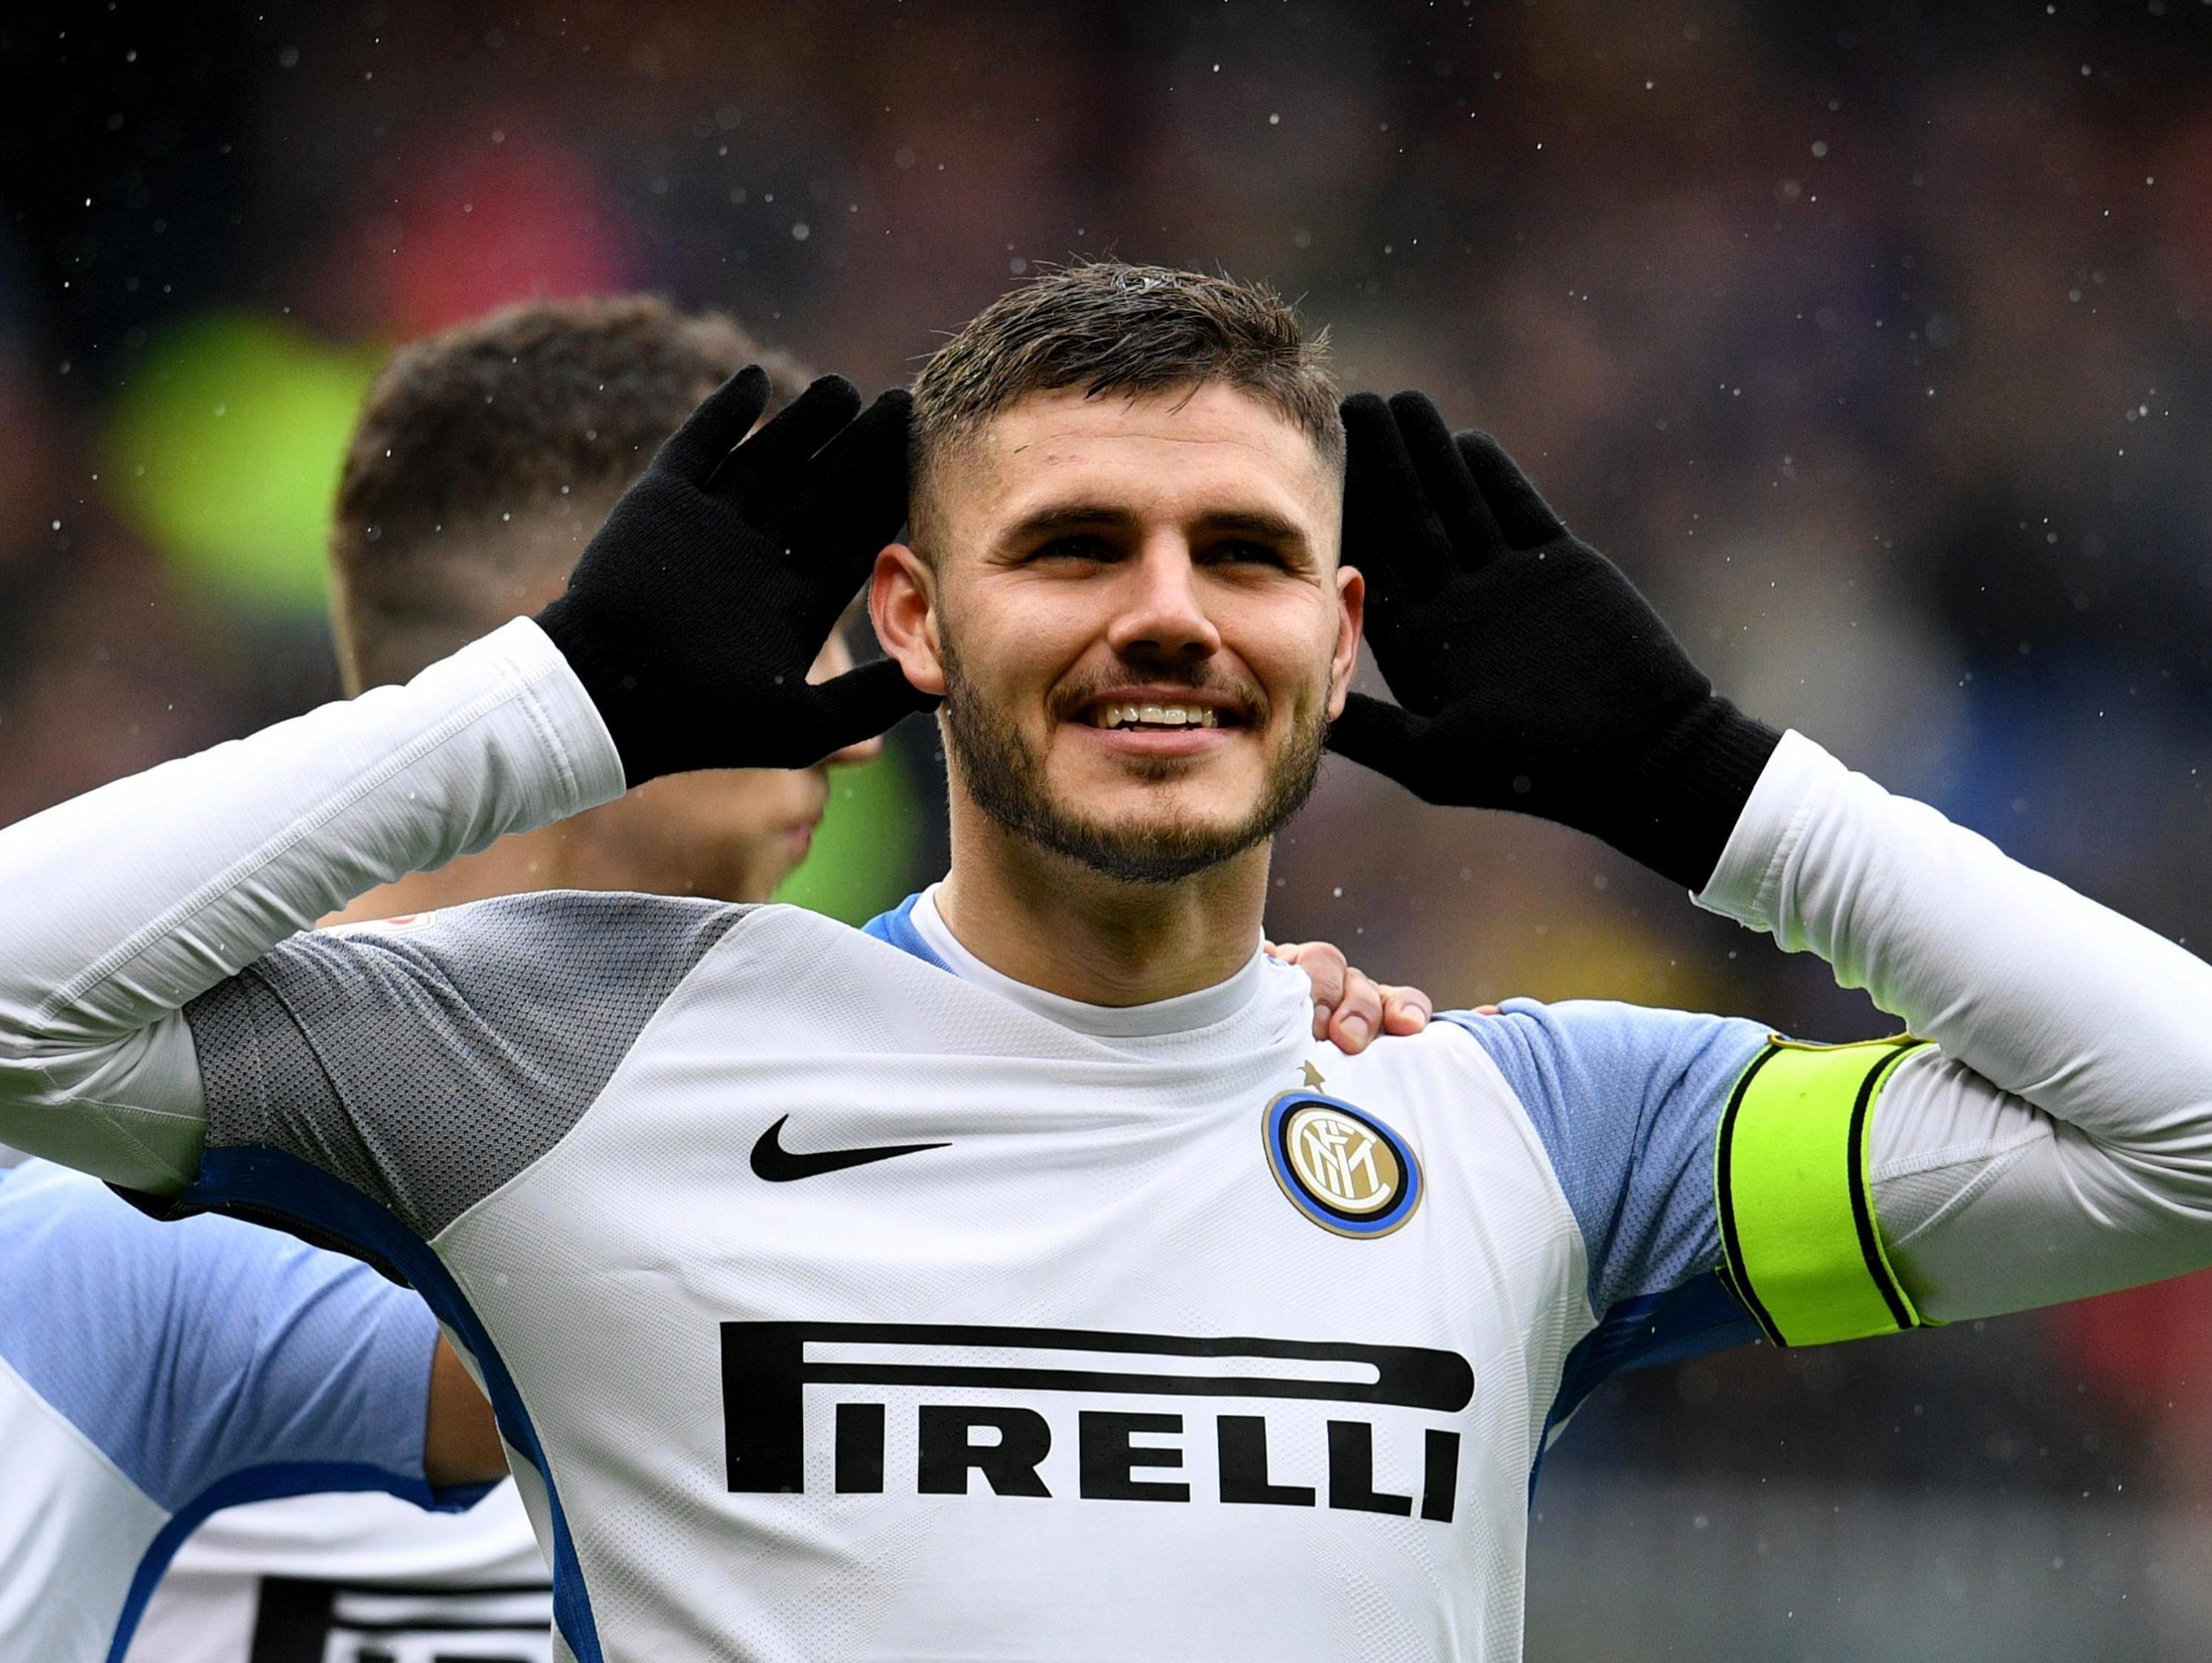 Inter Milan in talks with Real Madrid target Mauro Icardi over contract extension until 2023 — with £96million release clause to be 'significantly increased'